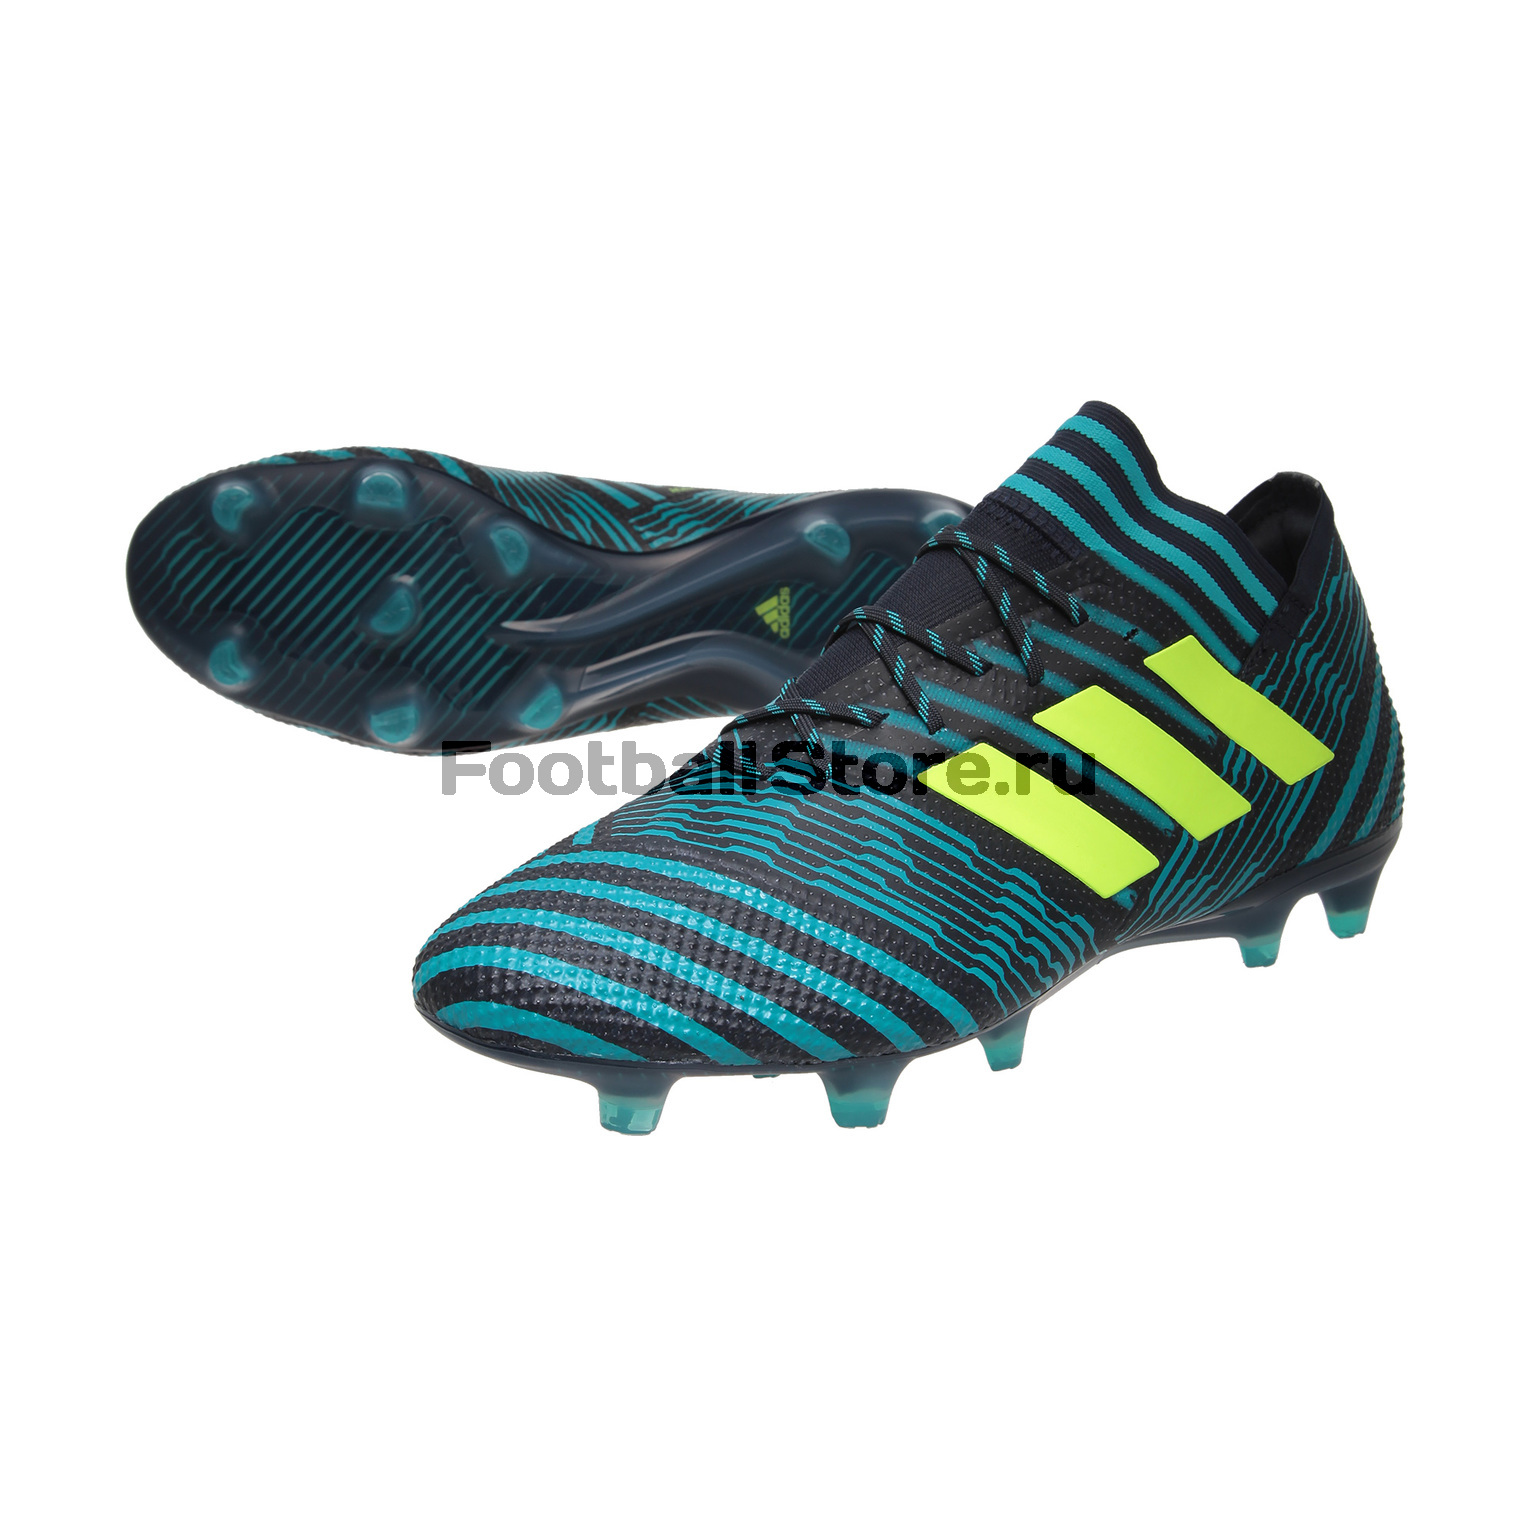 Игровые бутсы Adidas Бутсы Adidas Nemeziz 17.1 FG BB6078 adidas denim superskin